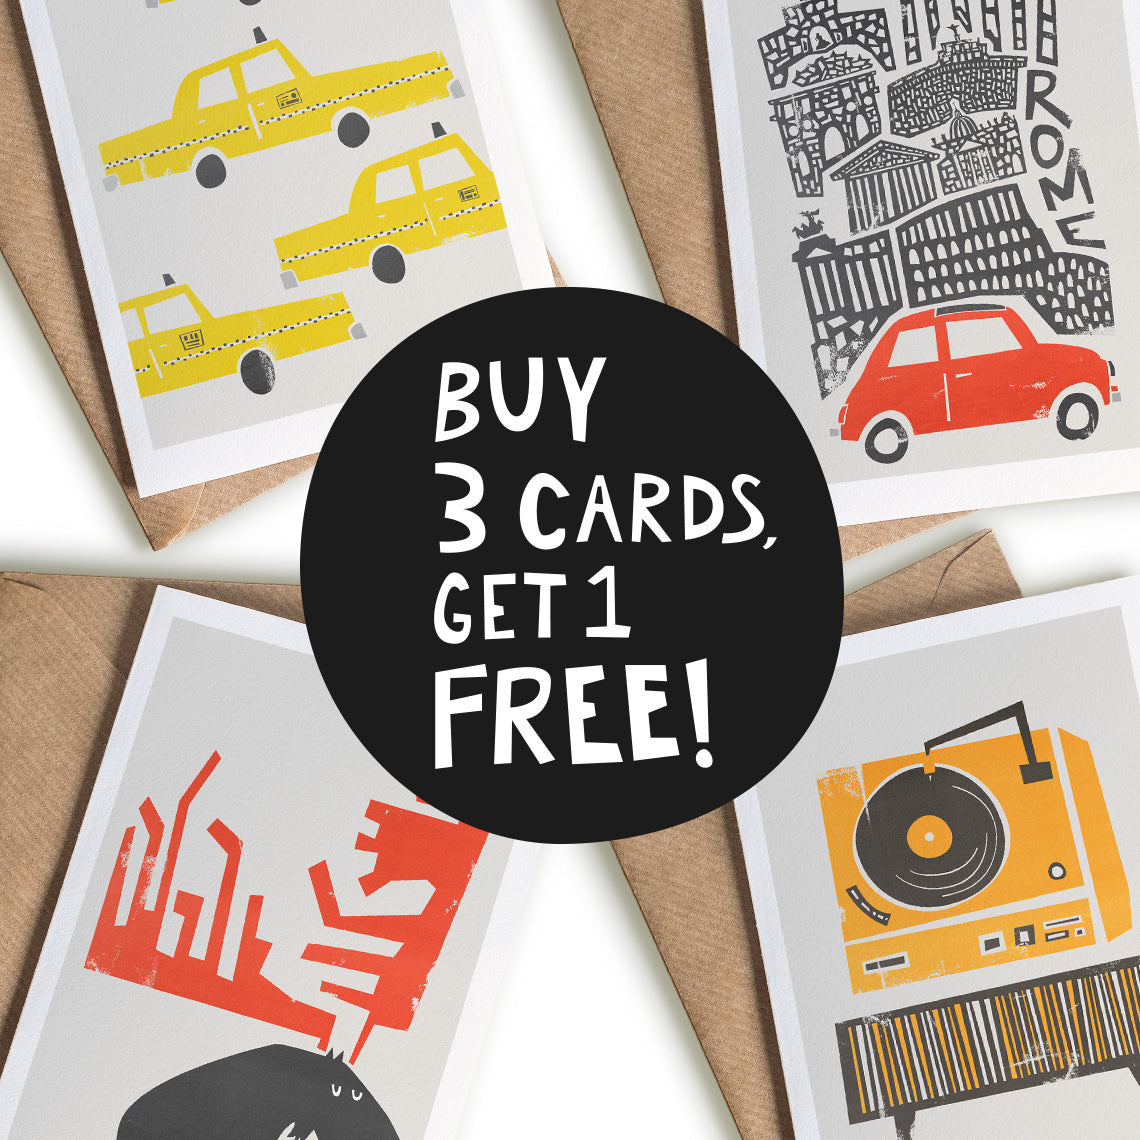 Buy 3 Cards, Get 1 Free!